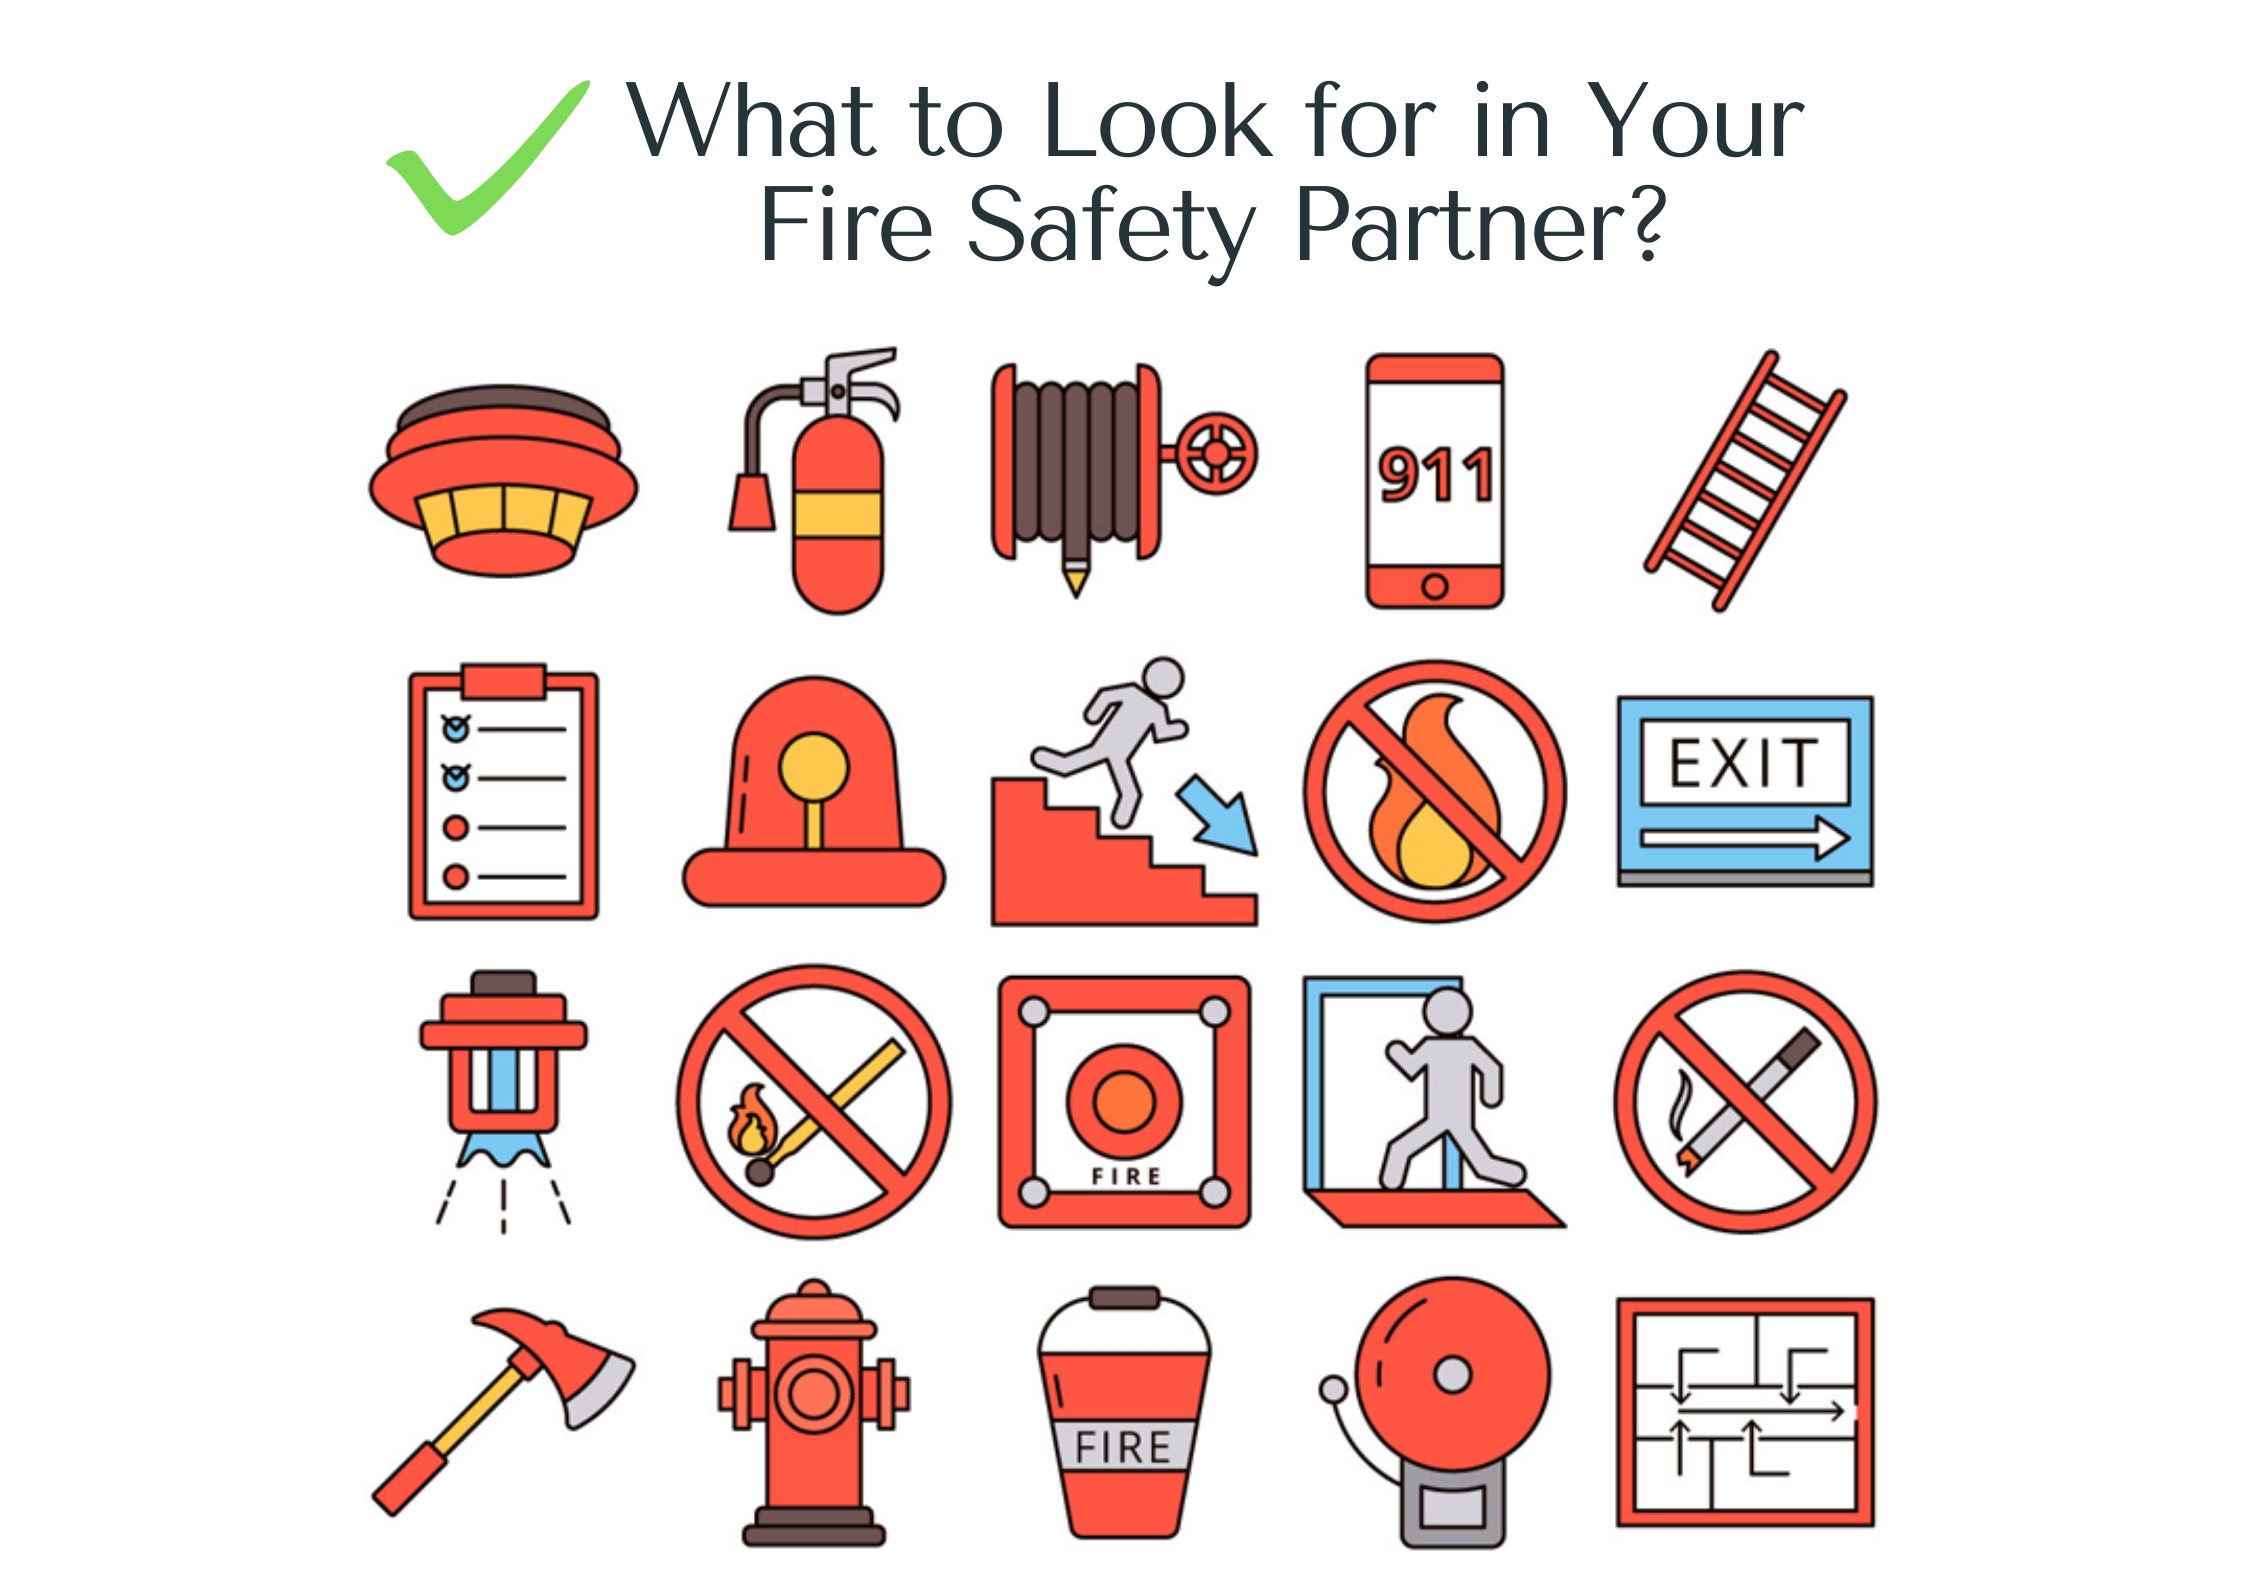 What-to-Look-for-in-Your-Fire-Safety-Partner